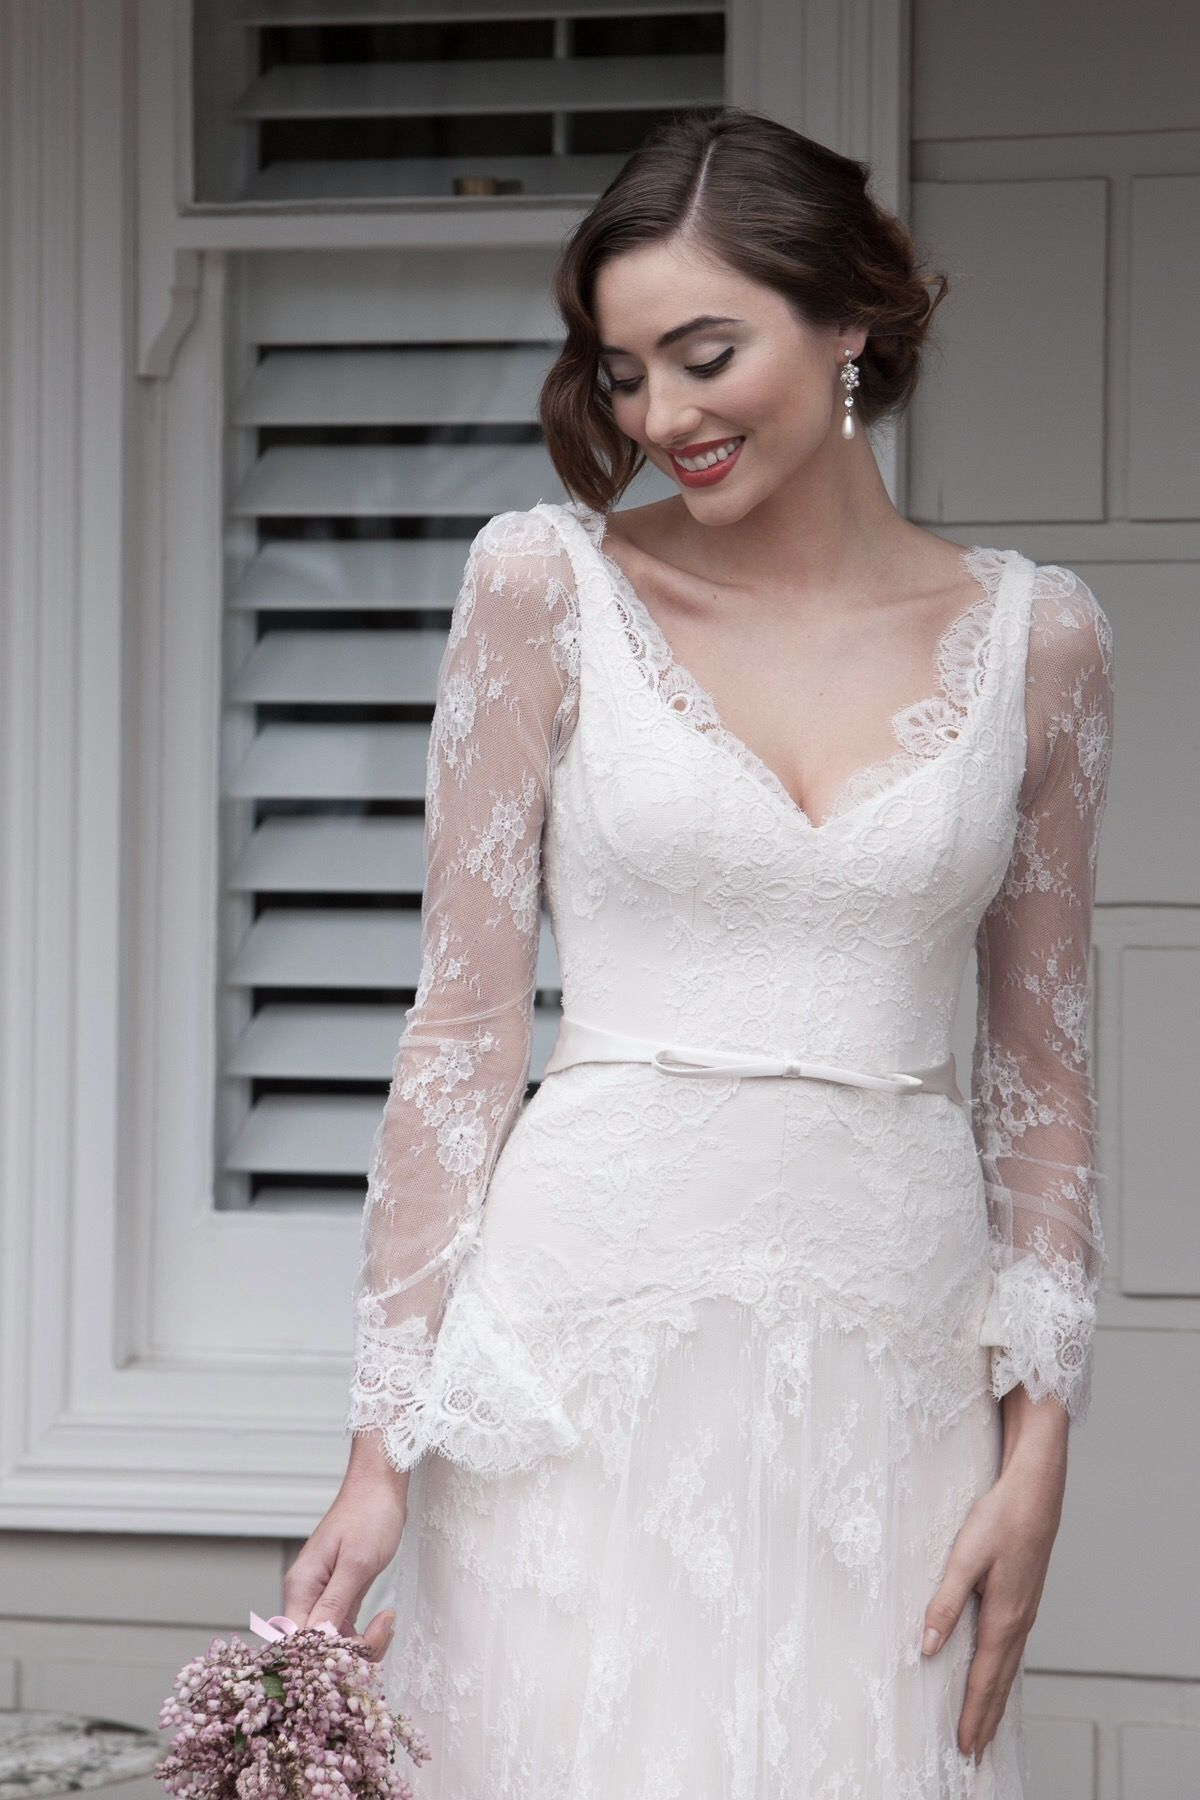 Catherine R Couture Melbourne bridal gowns, wedding